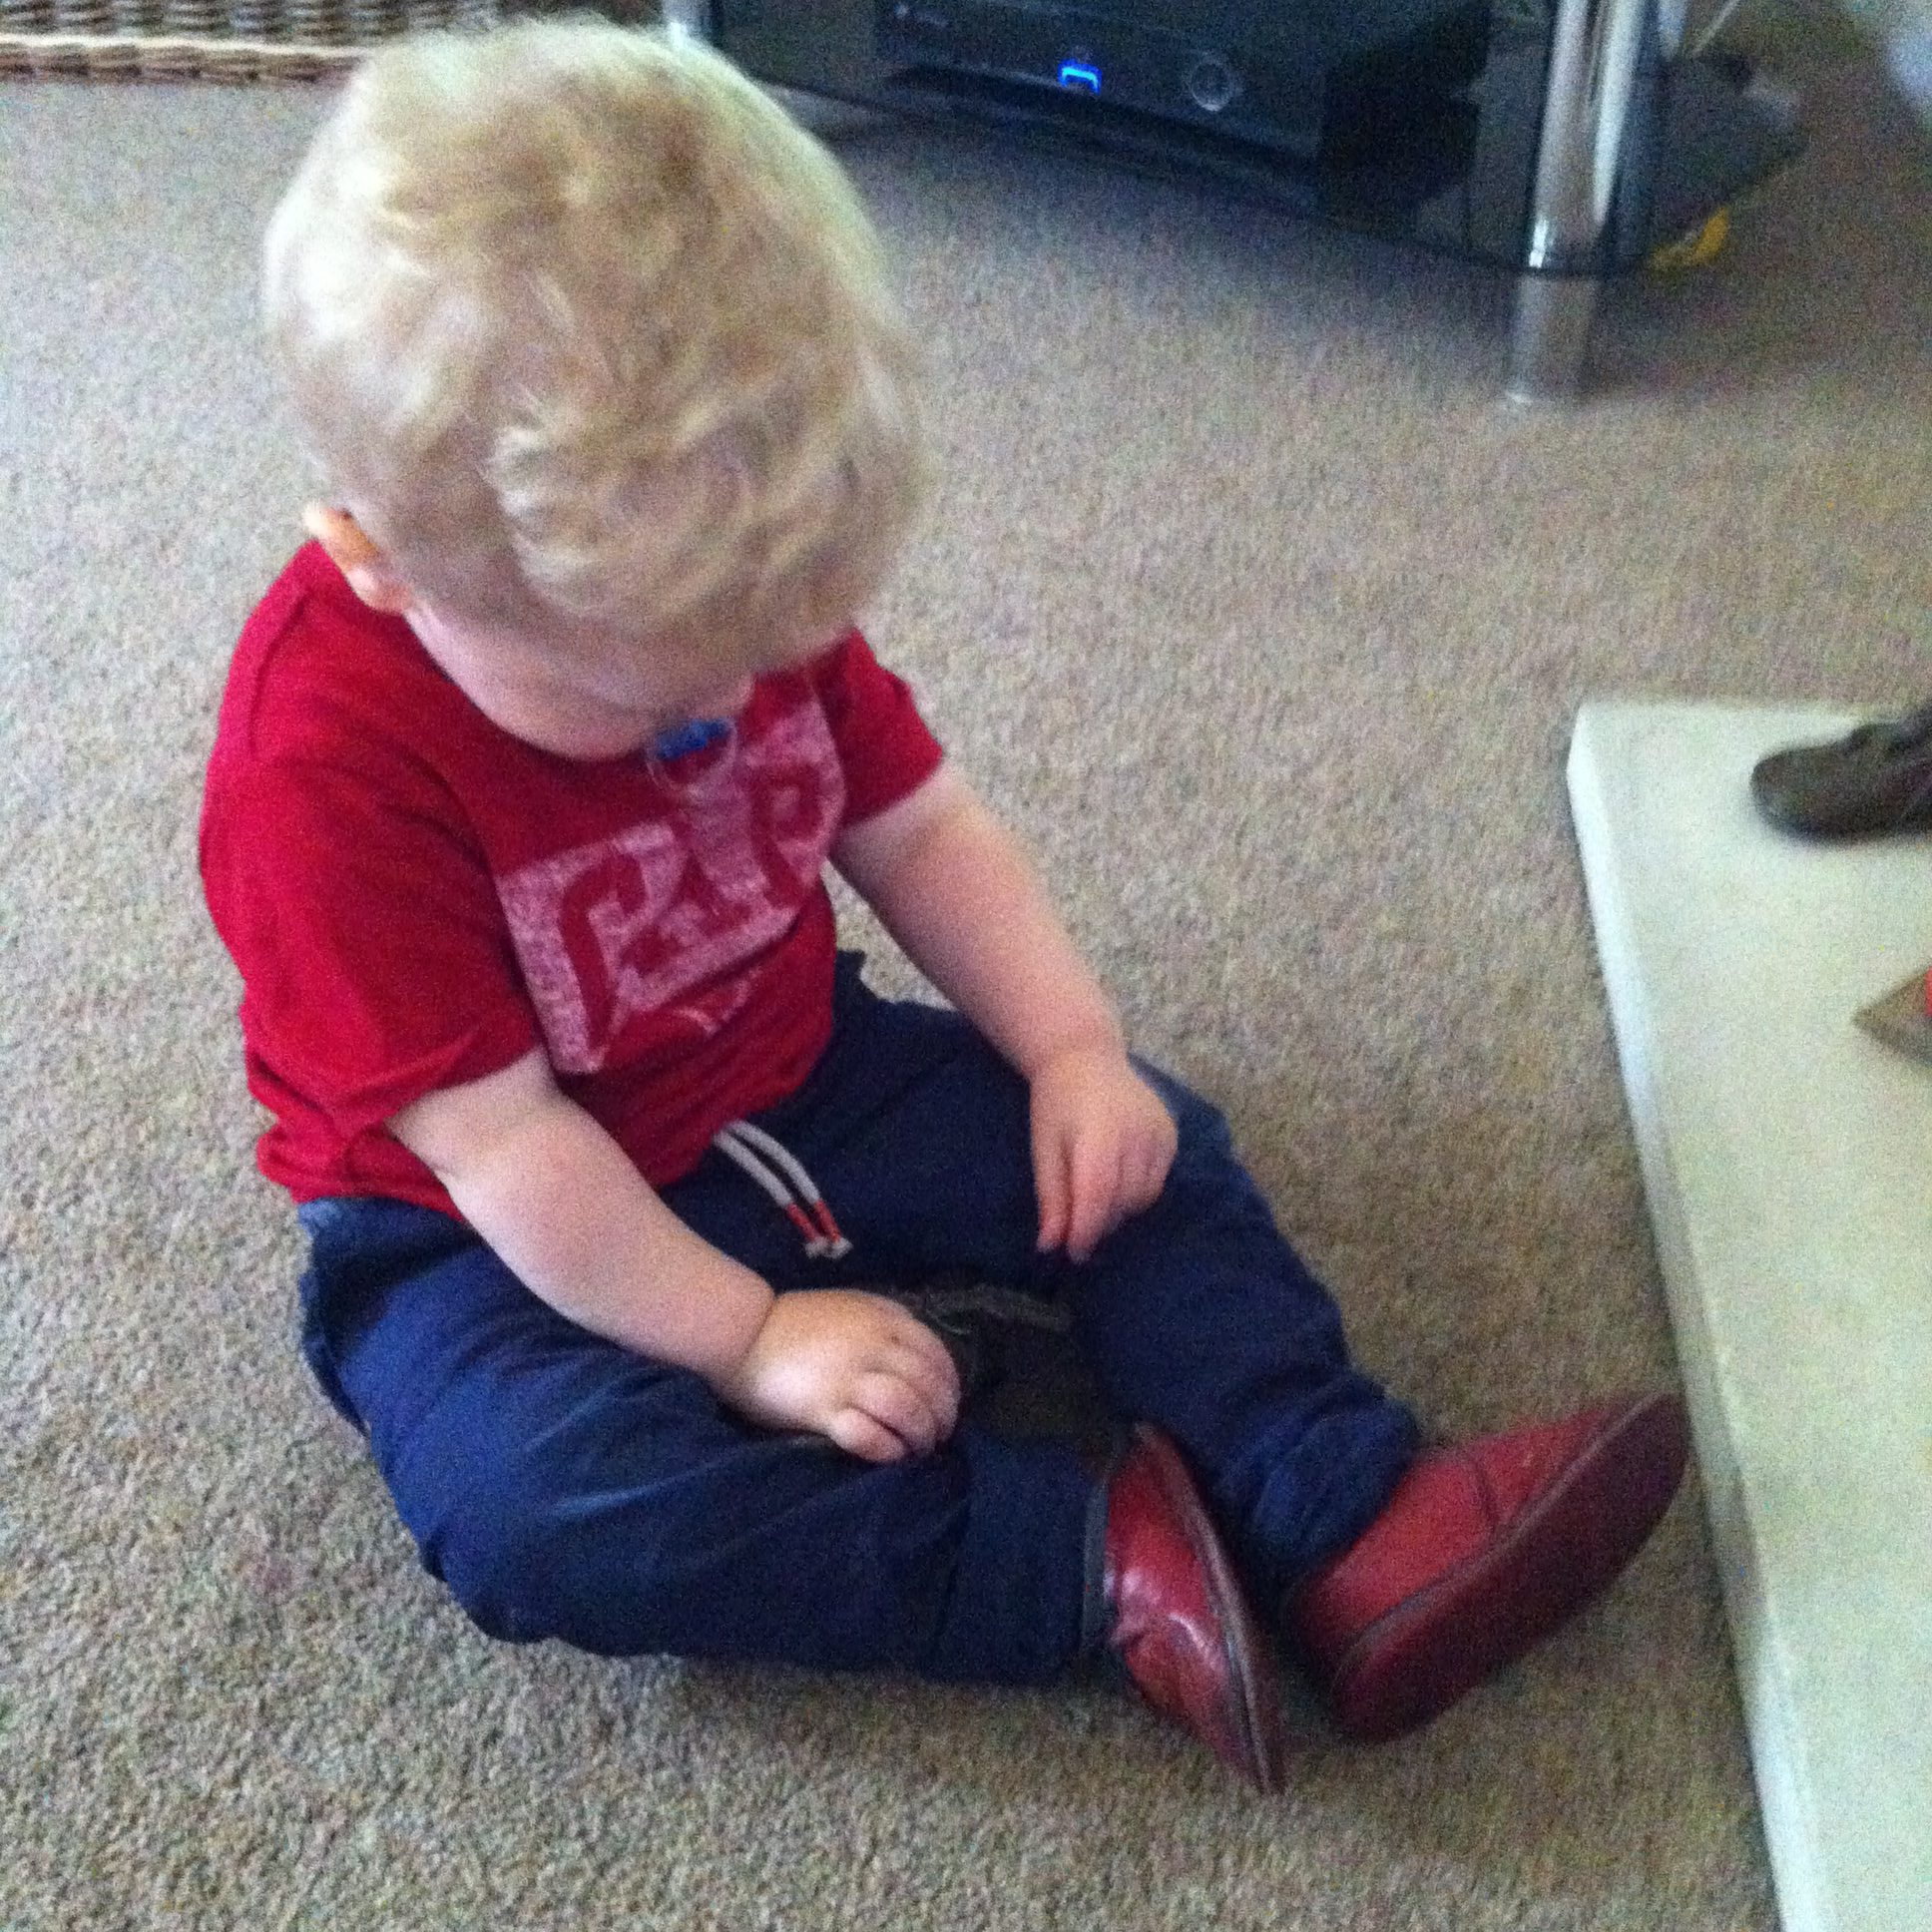 Lucas looking down at red shoes he is wearing. They are his uncles first shoes. Lucas is wearing a red gap t shirt and navy pants